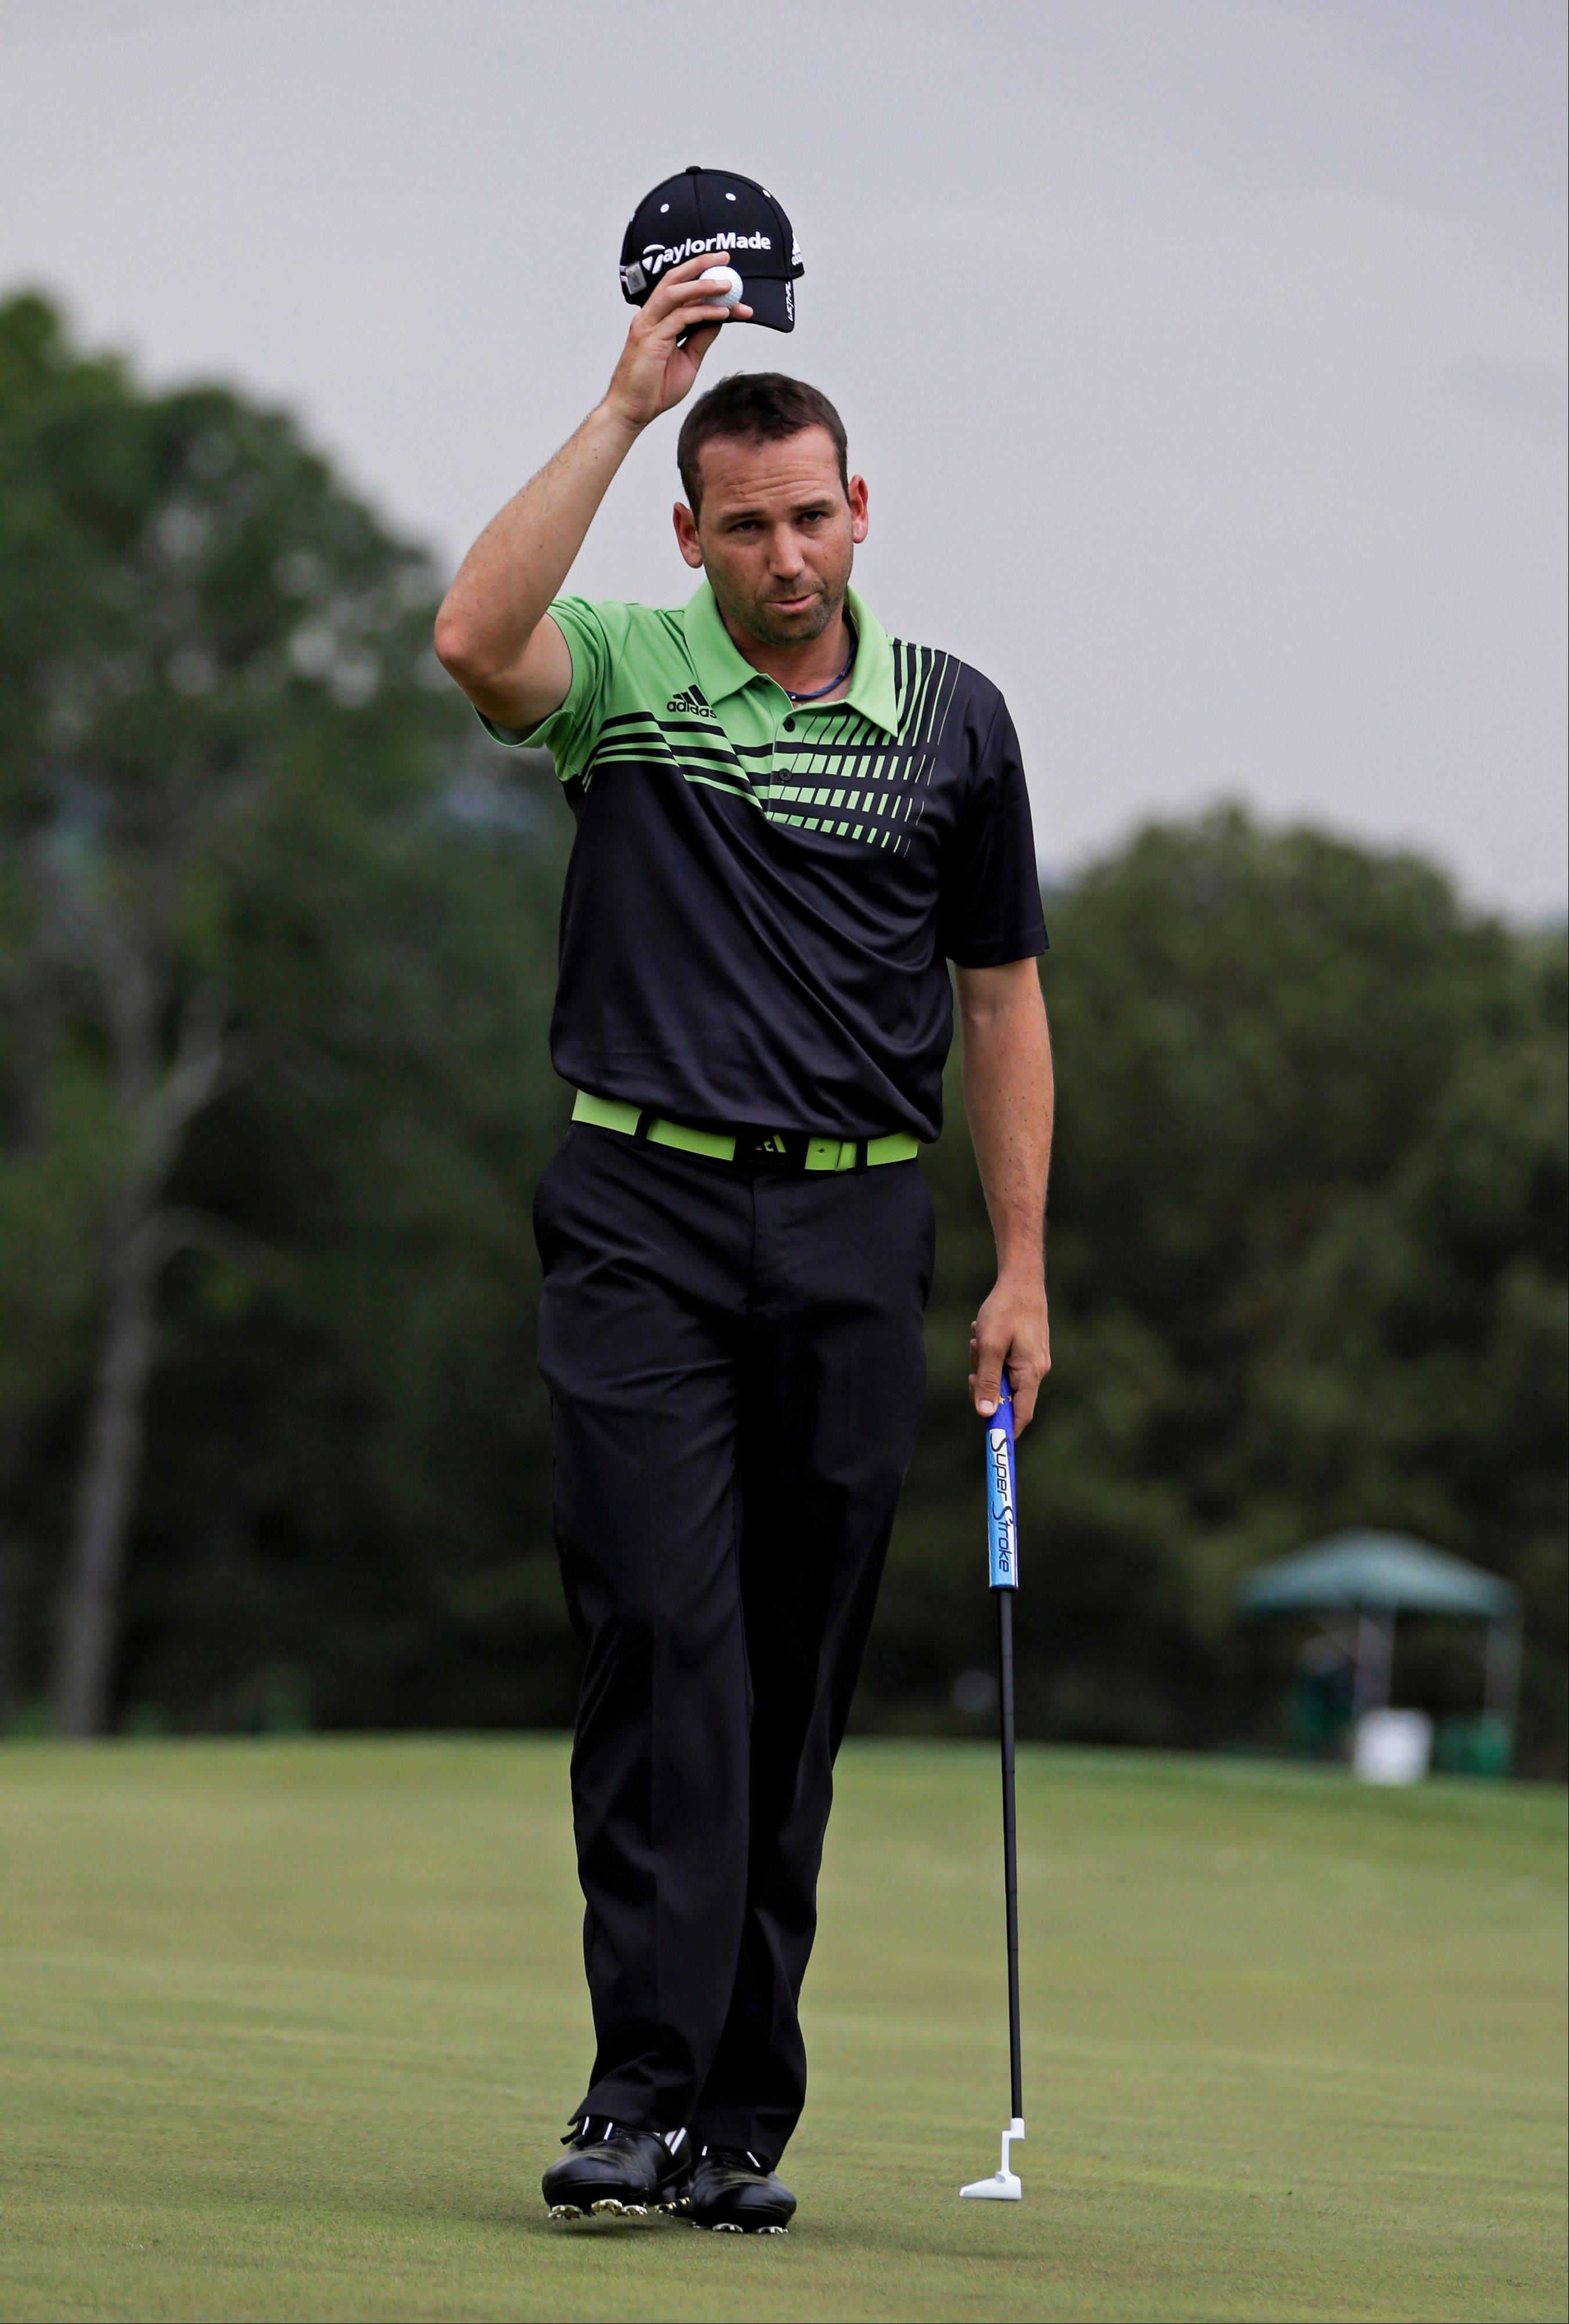 Sergio Garcia, of Spain, tips his cap on the 18th green after finishing the first round of the Masters golf tournament Thursday, April 11, 2013, in Augusta, Ga.